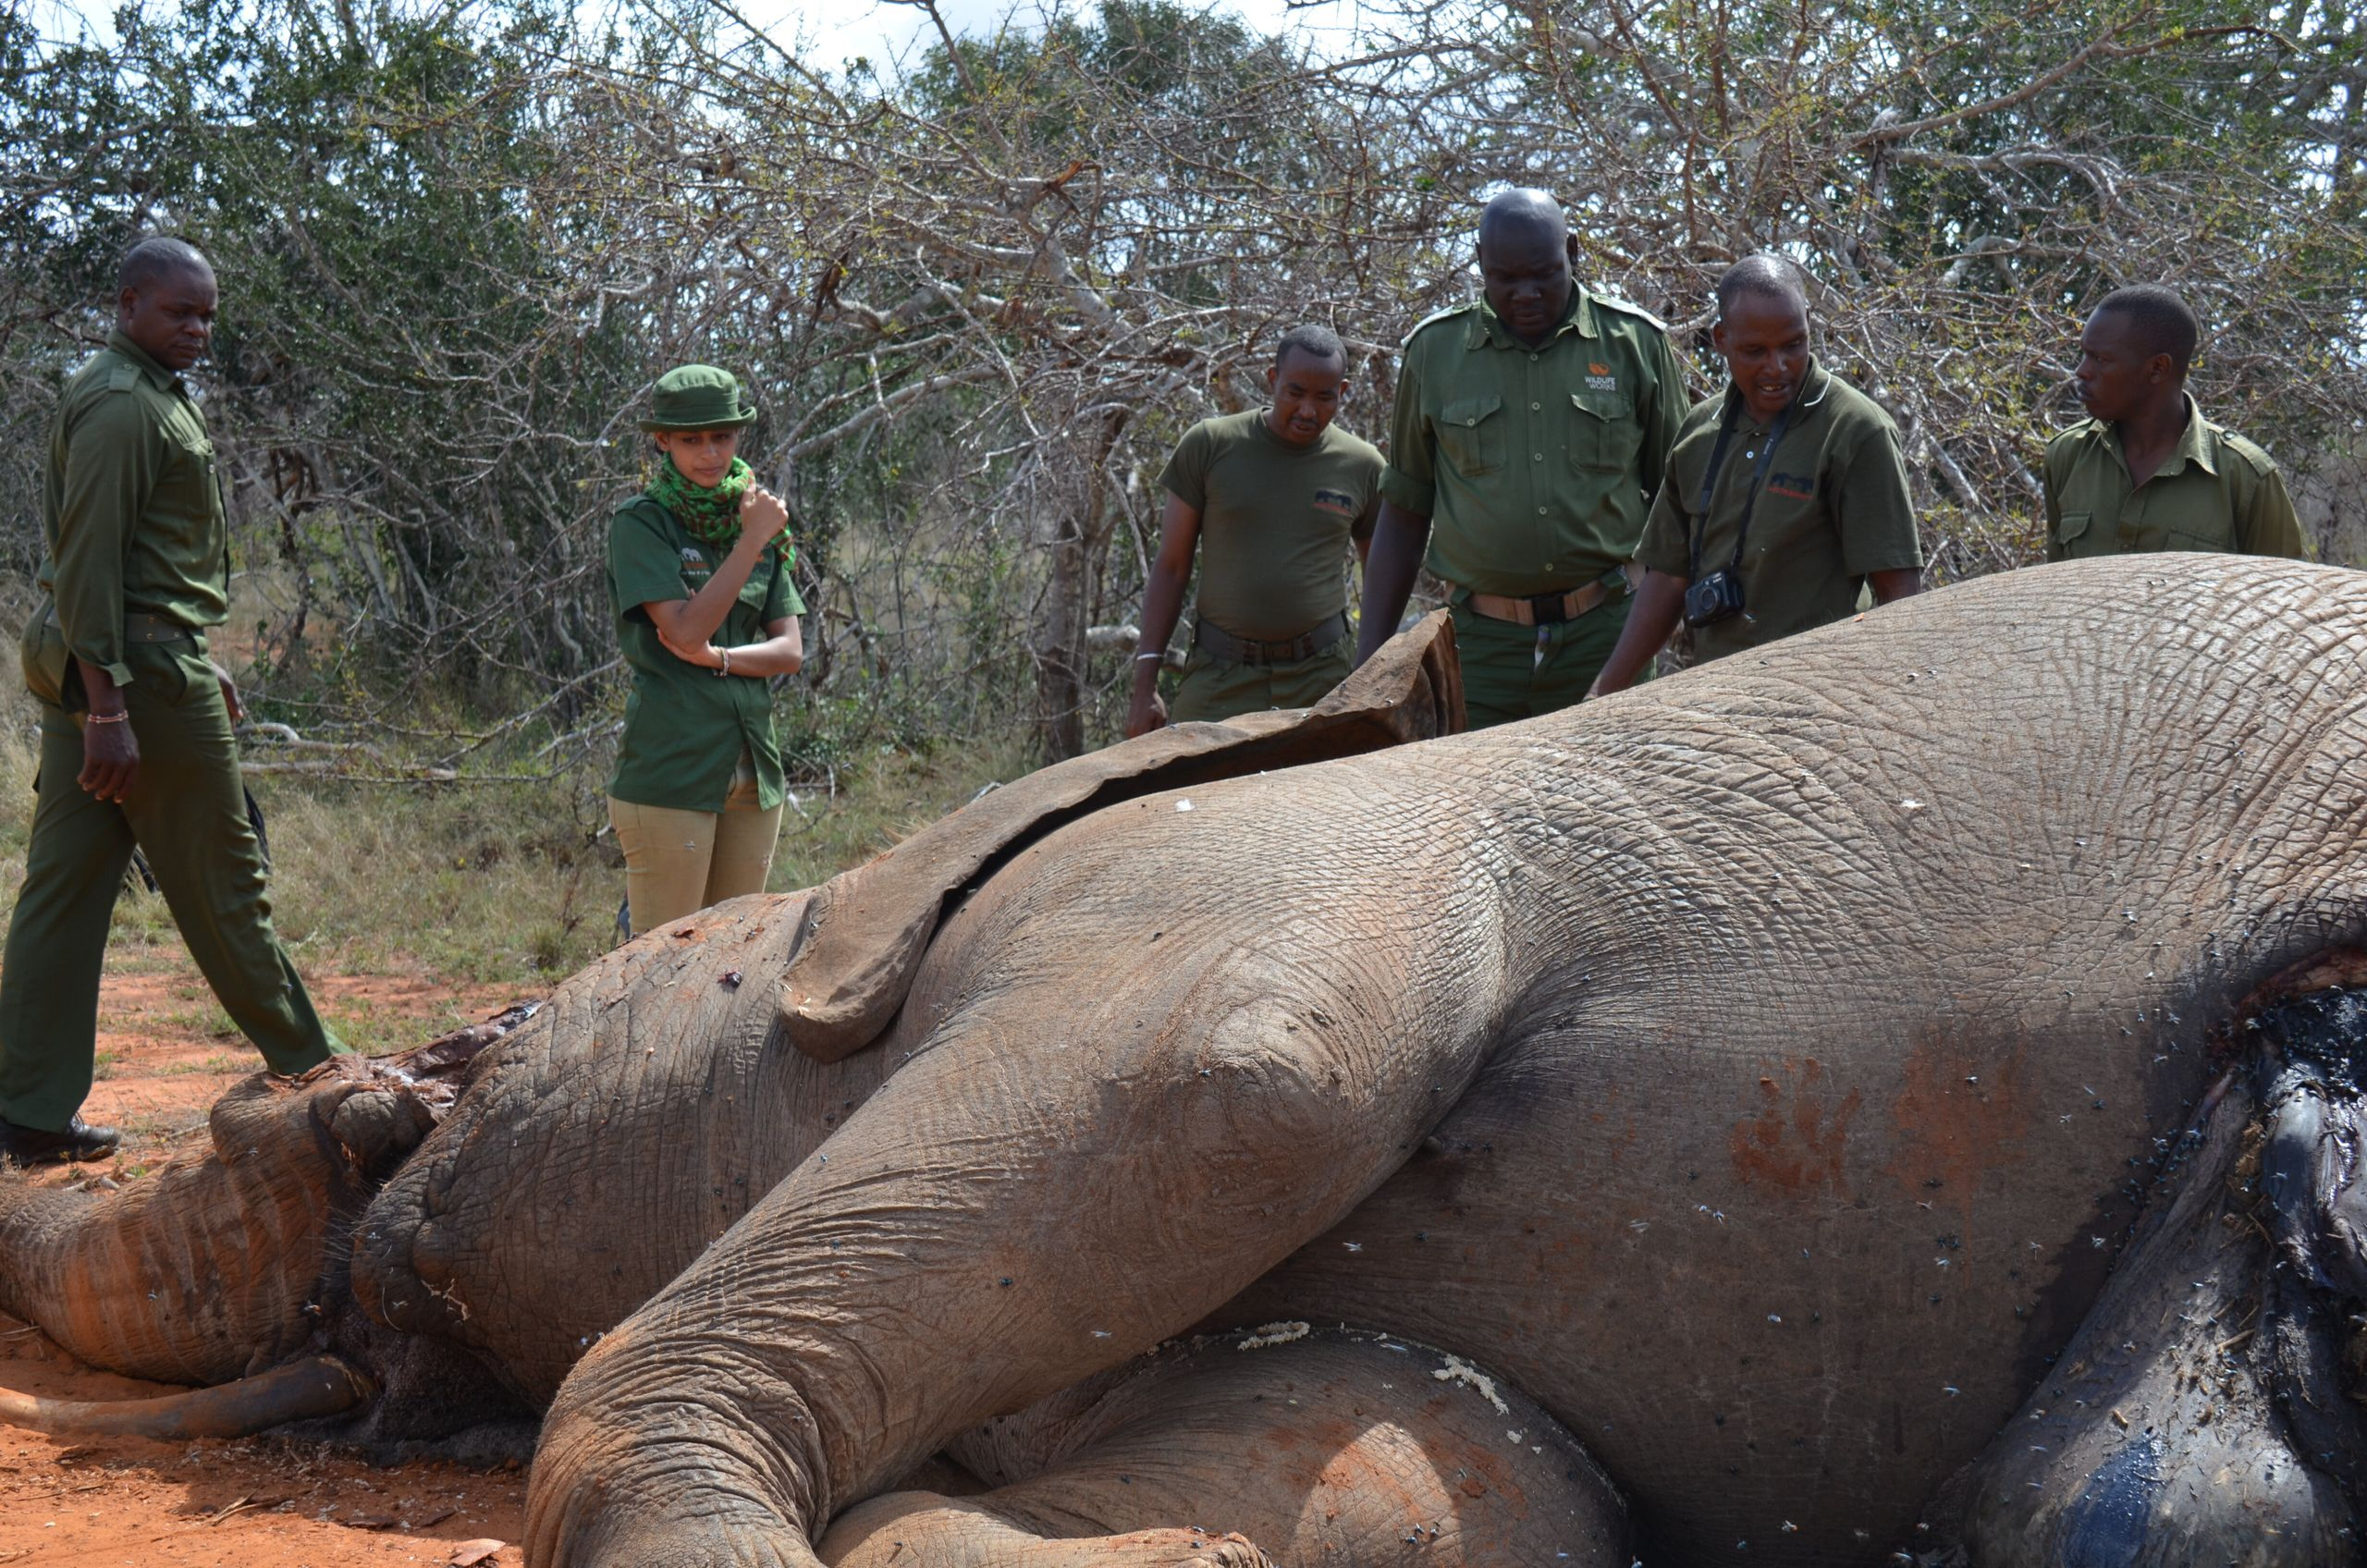 Hawa in front of thefreshly poached, dying elephant that inspired her to act against poachers.